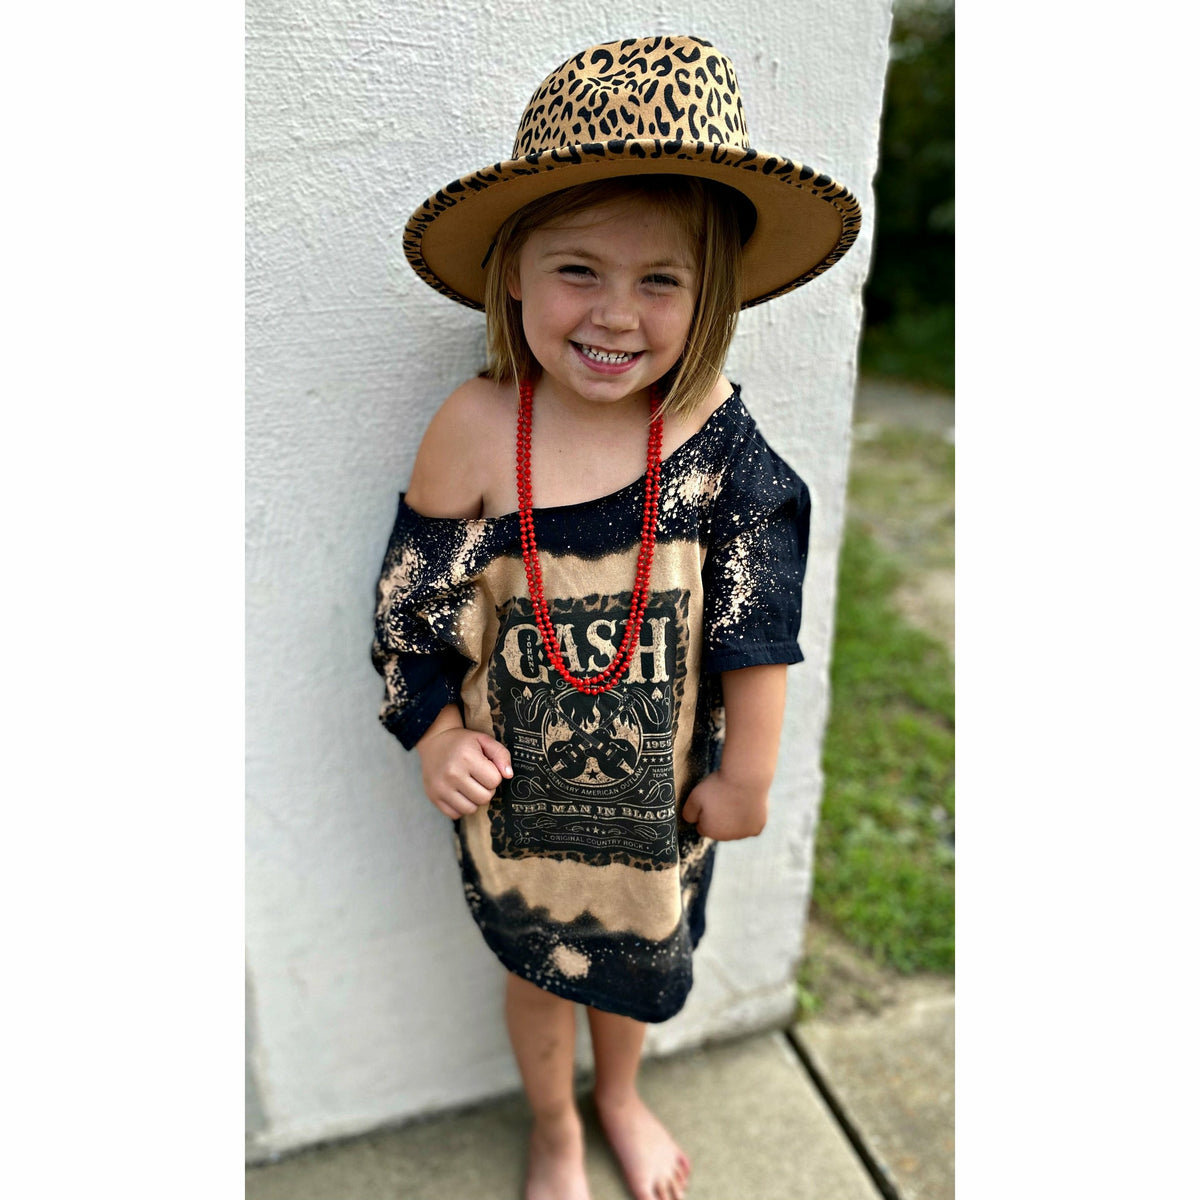 Cash Kids Tee or T-shirt Dress